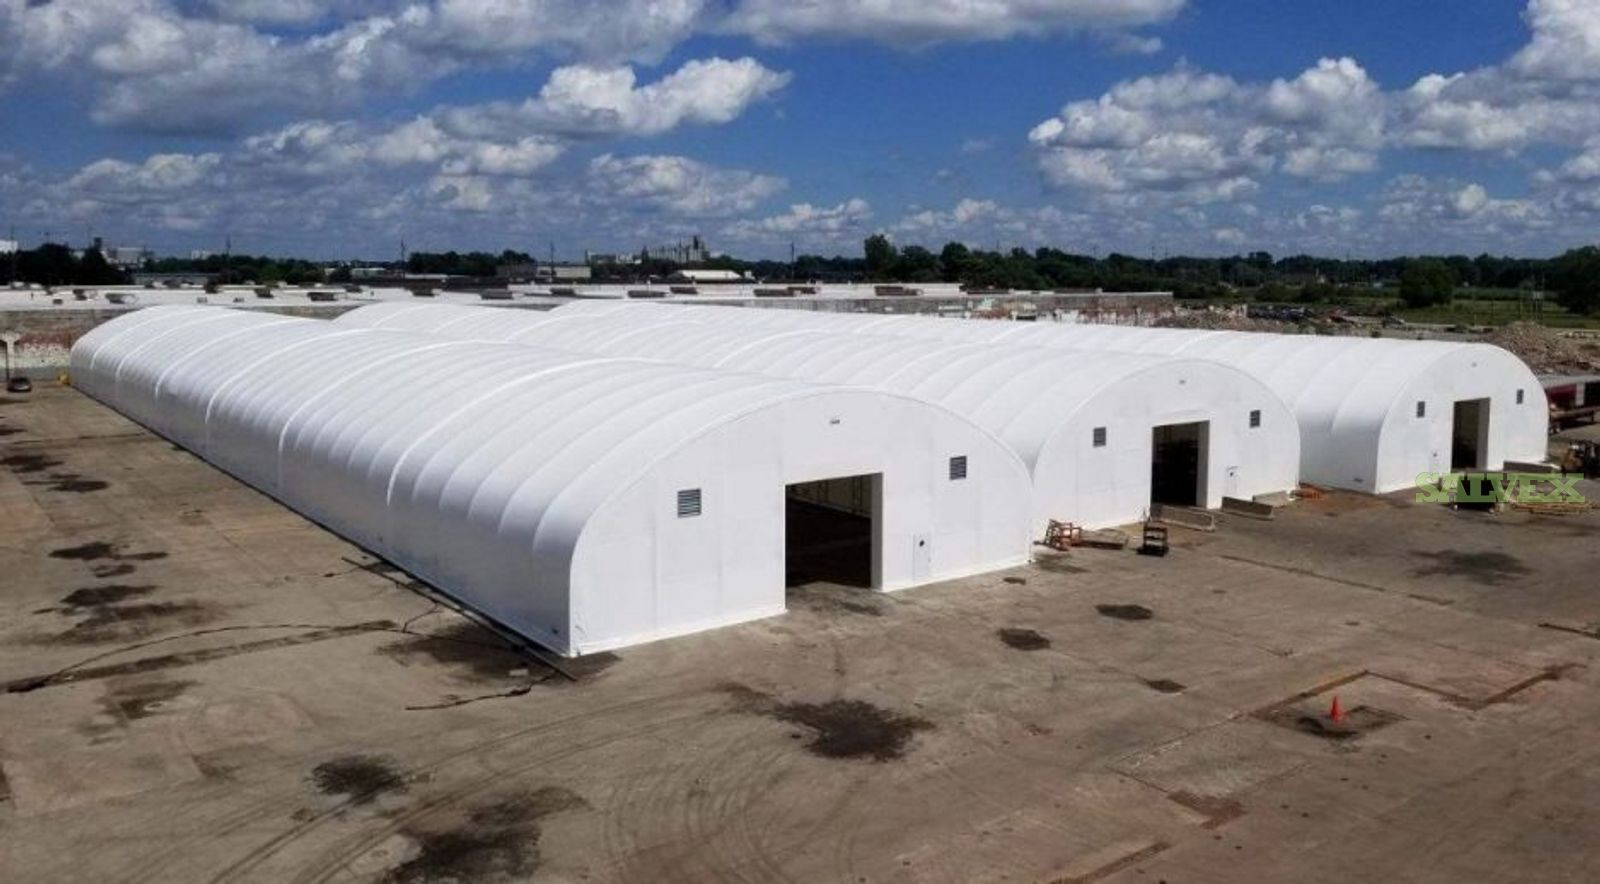 Prefab Structures - L 300Ft  X  W 100Ft  X  H 32Ft - Owner Will Sell One at a Time (3 Units)